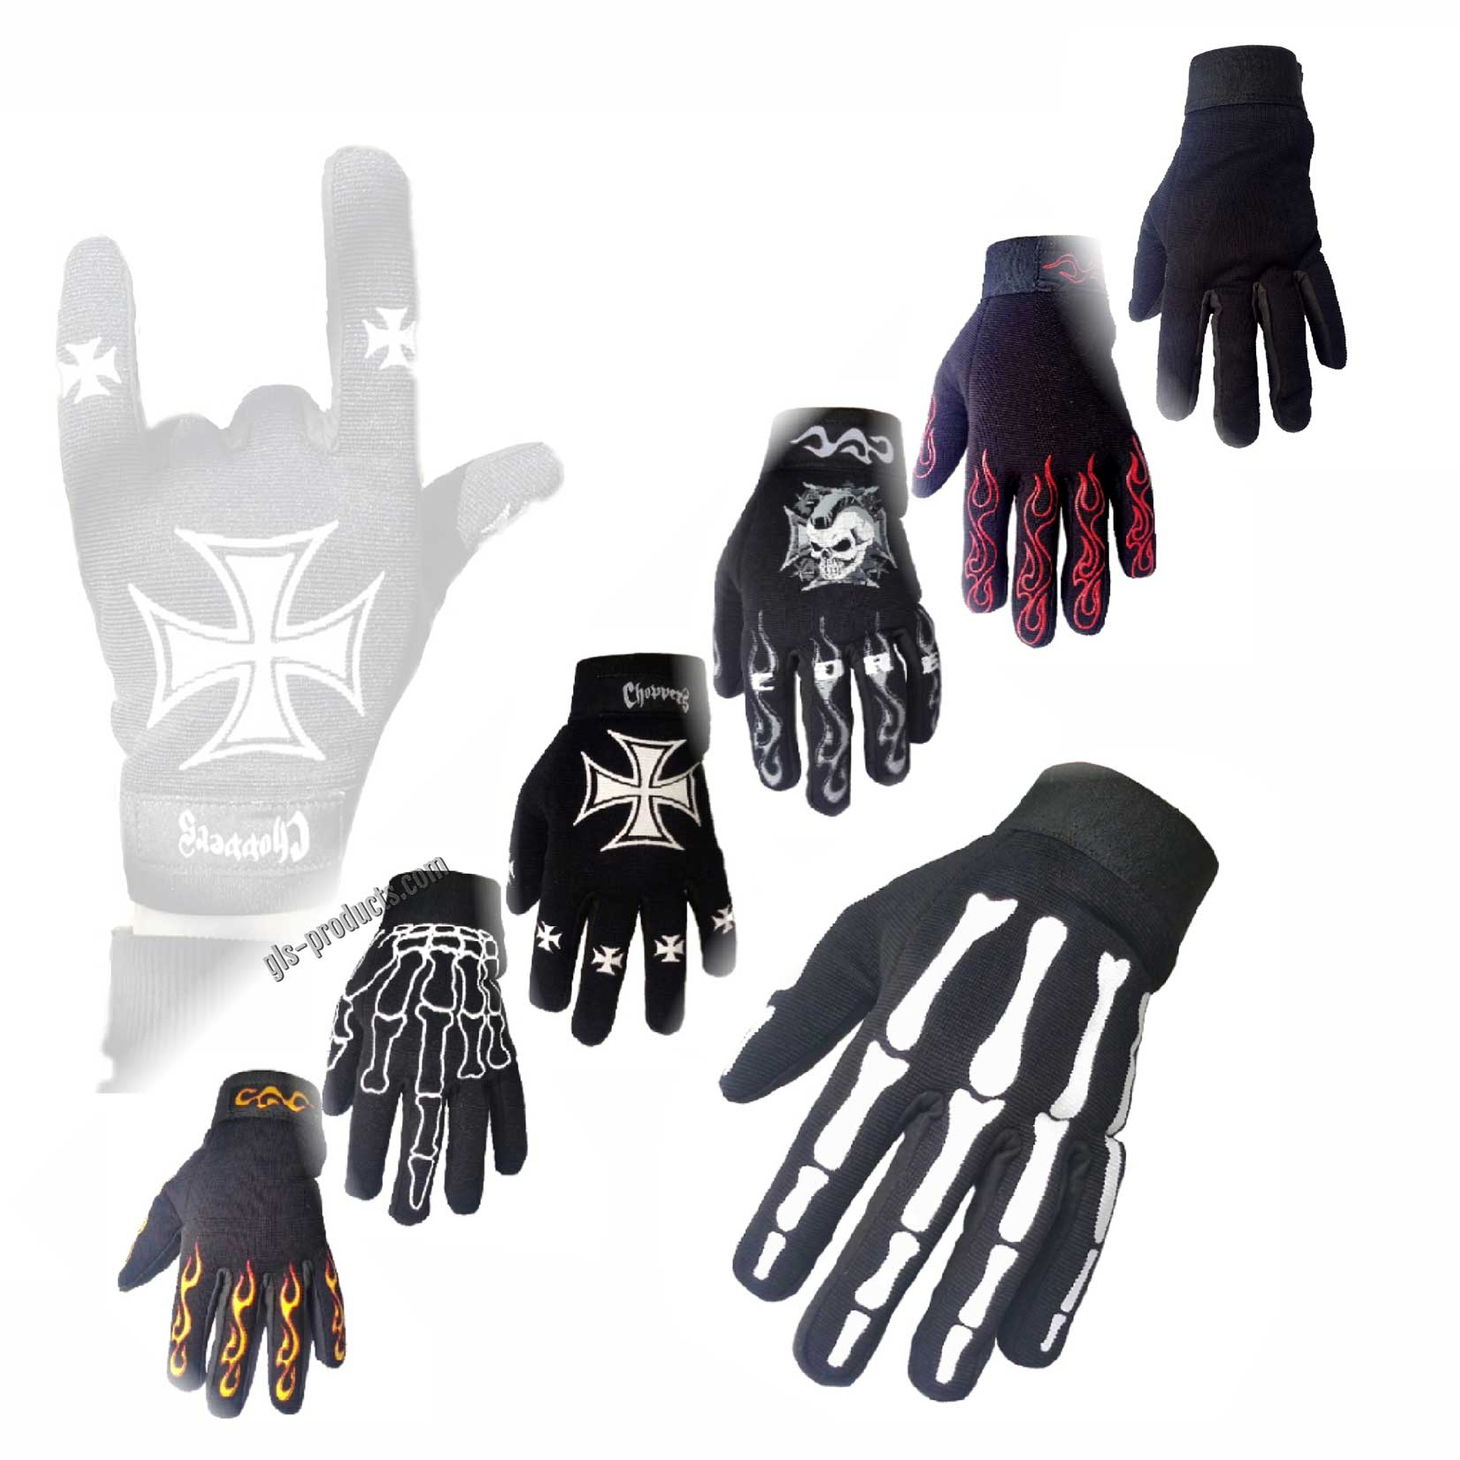 Mechanic Gloves, Flexible Neoprene Gloves – Picture 1